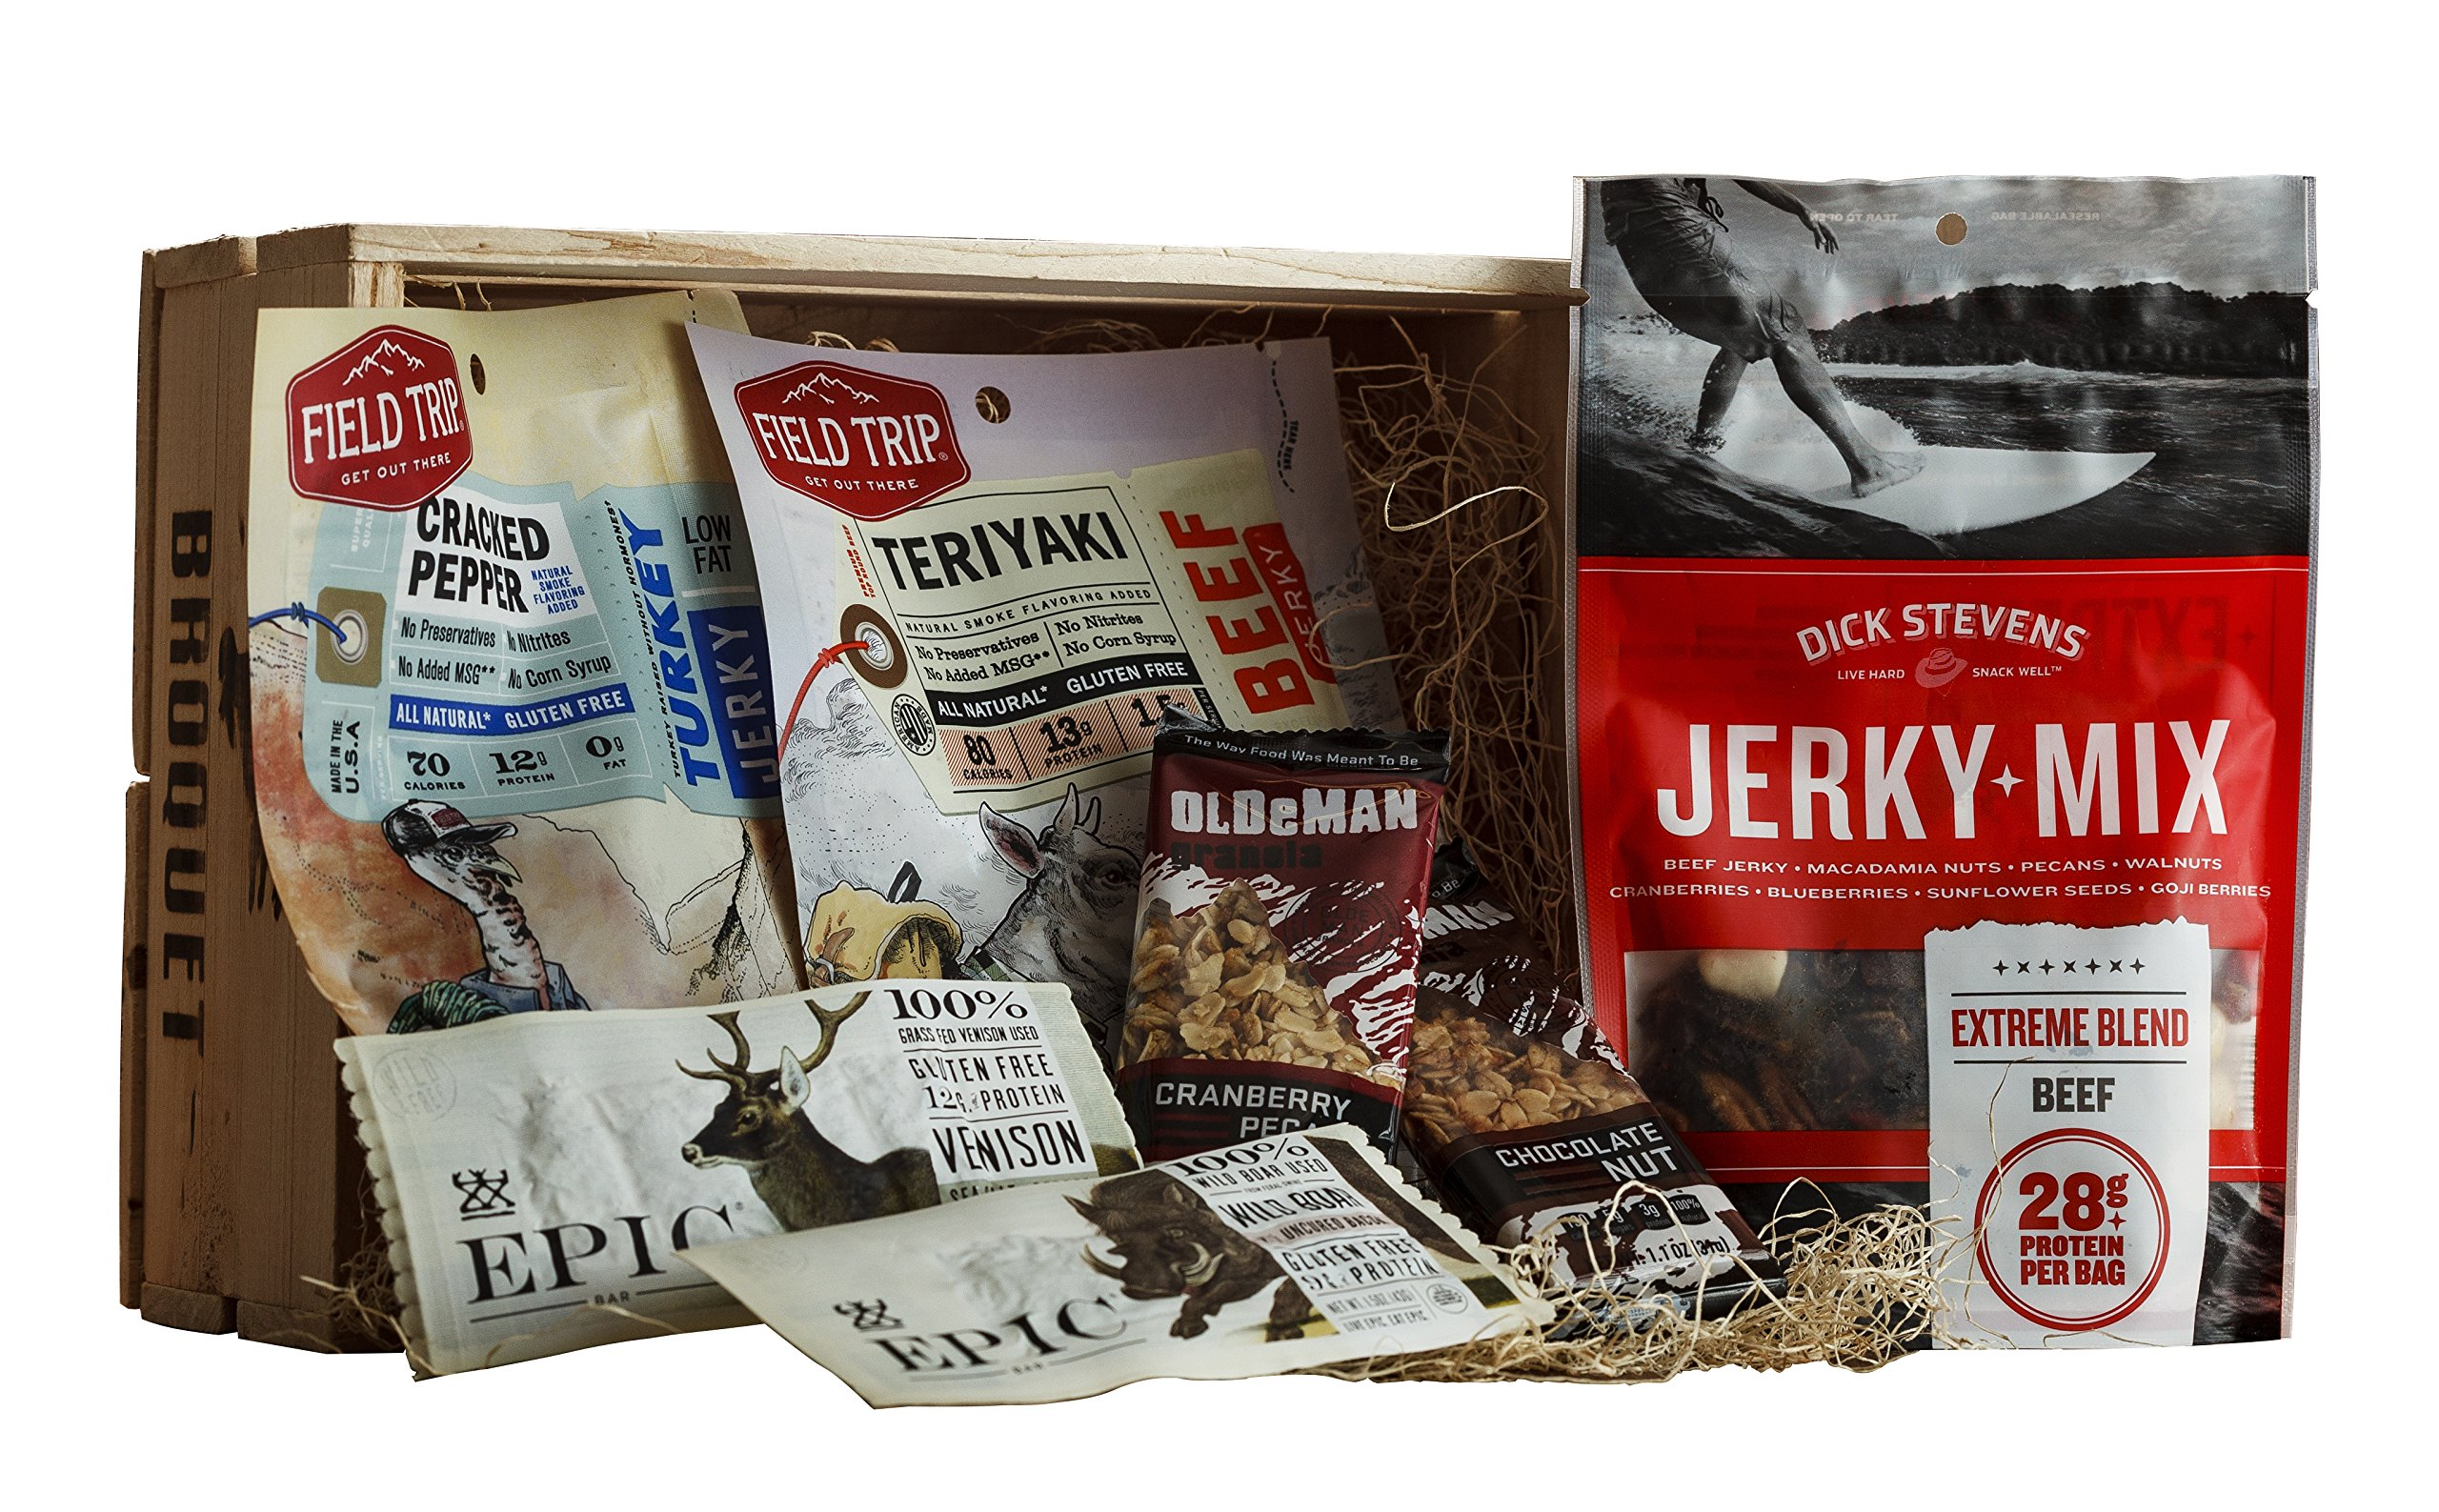 Jerky and Trail Mix Snack Gift (Healthy Snack Gift) - High Protein High Energy Care Package - Comes in a Wooden Gift Crate - Great Gift For Men by Broquet